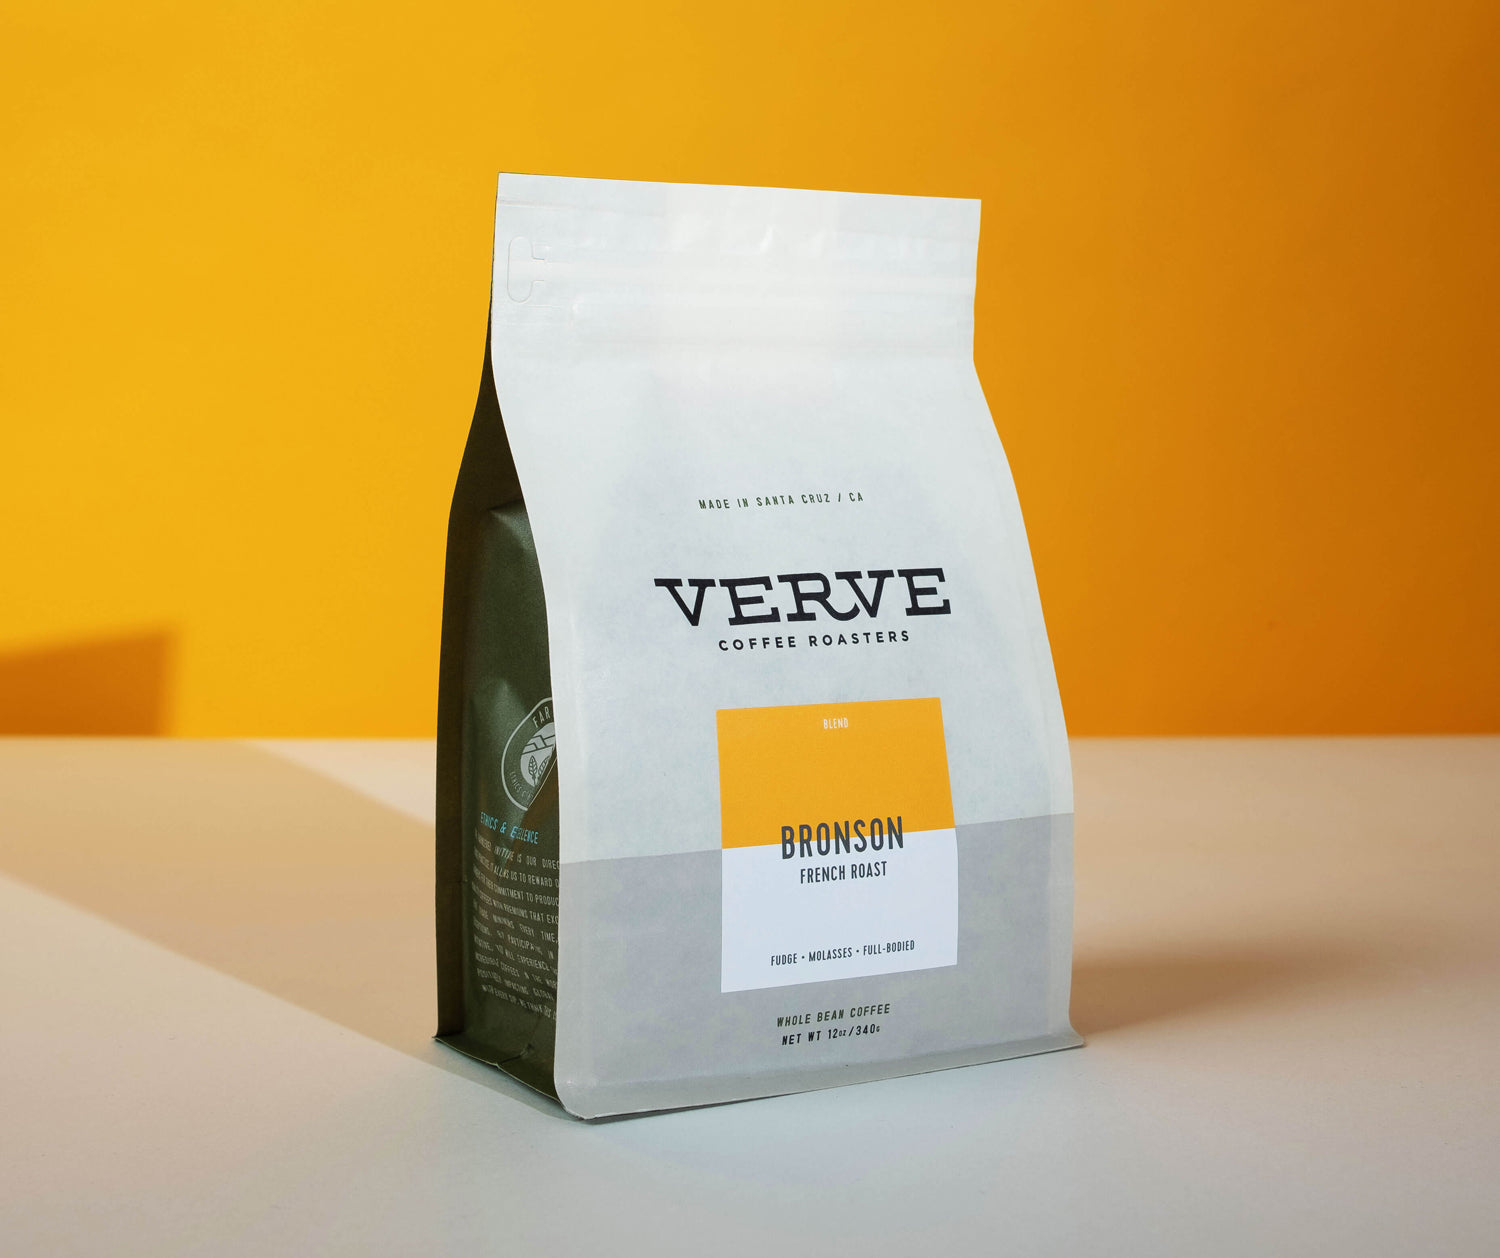 Verve Coffee Roasters Bronson French Roast Blend